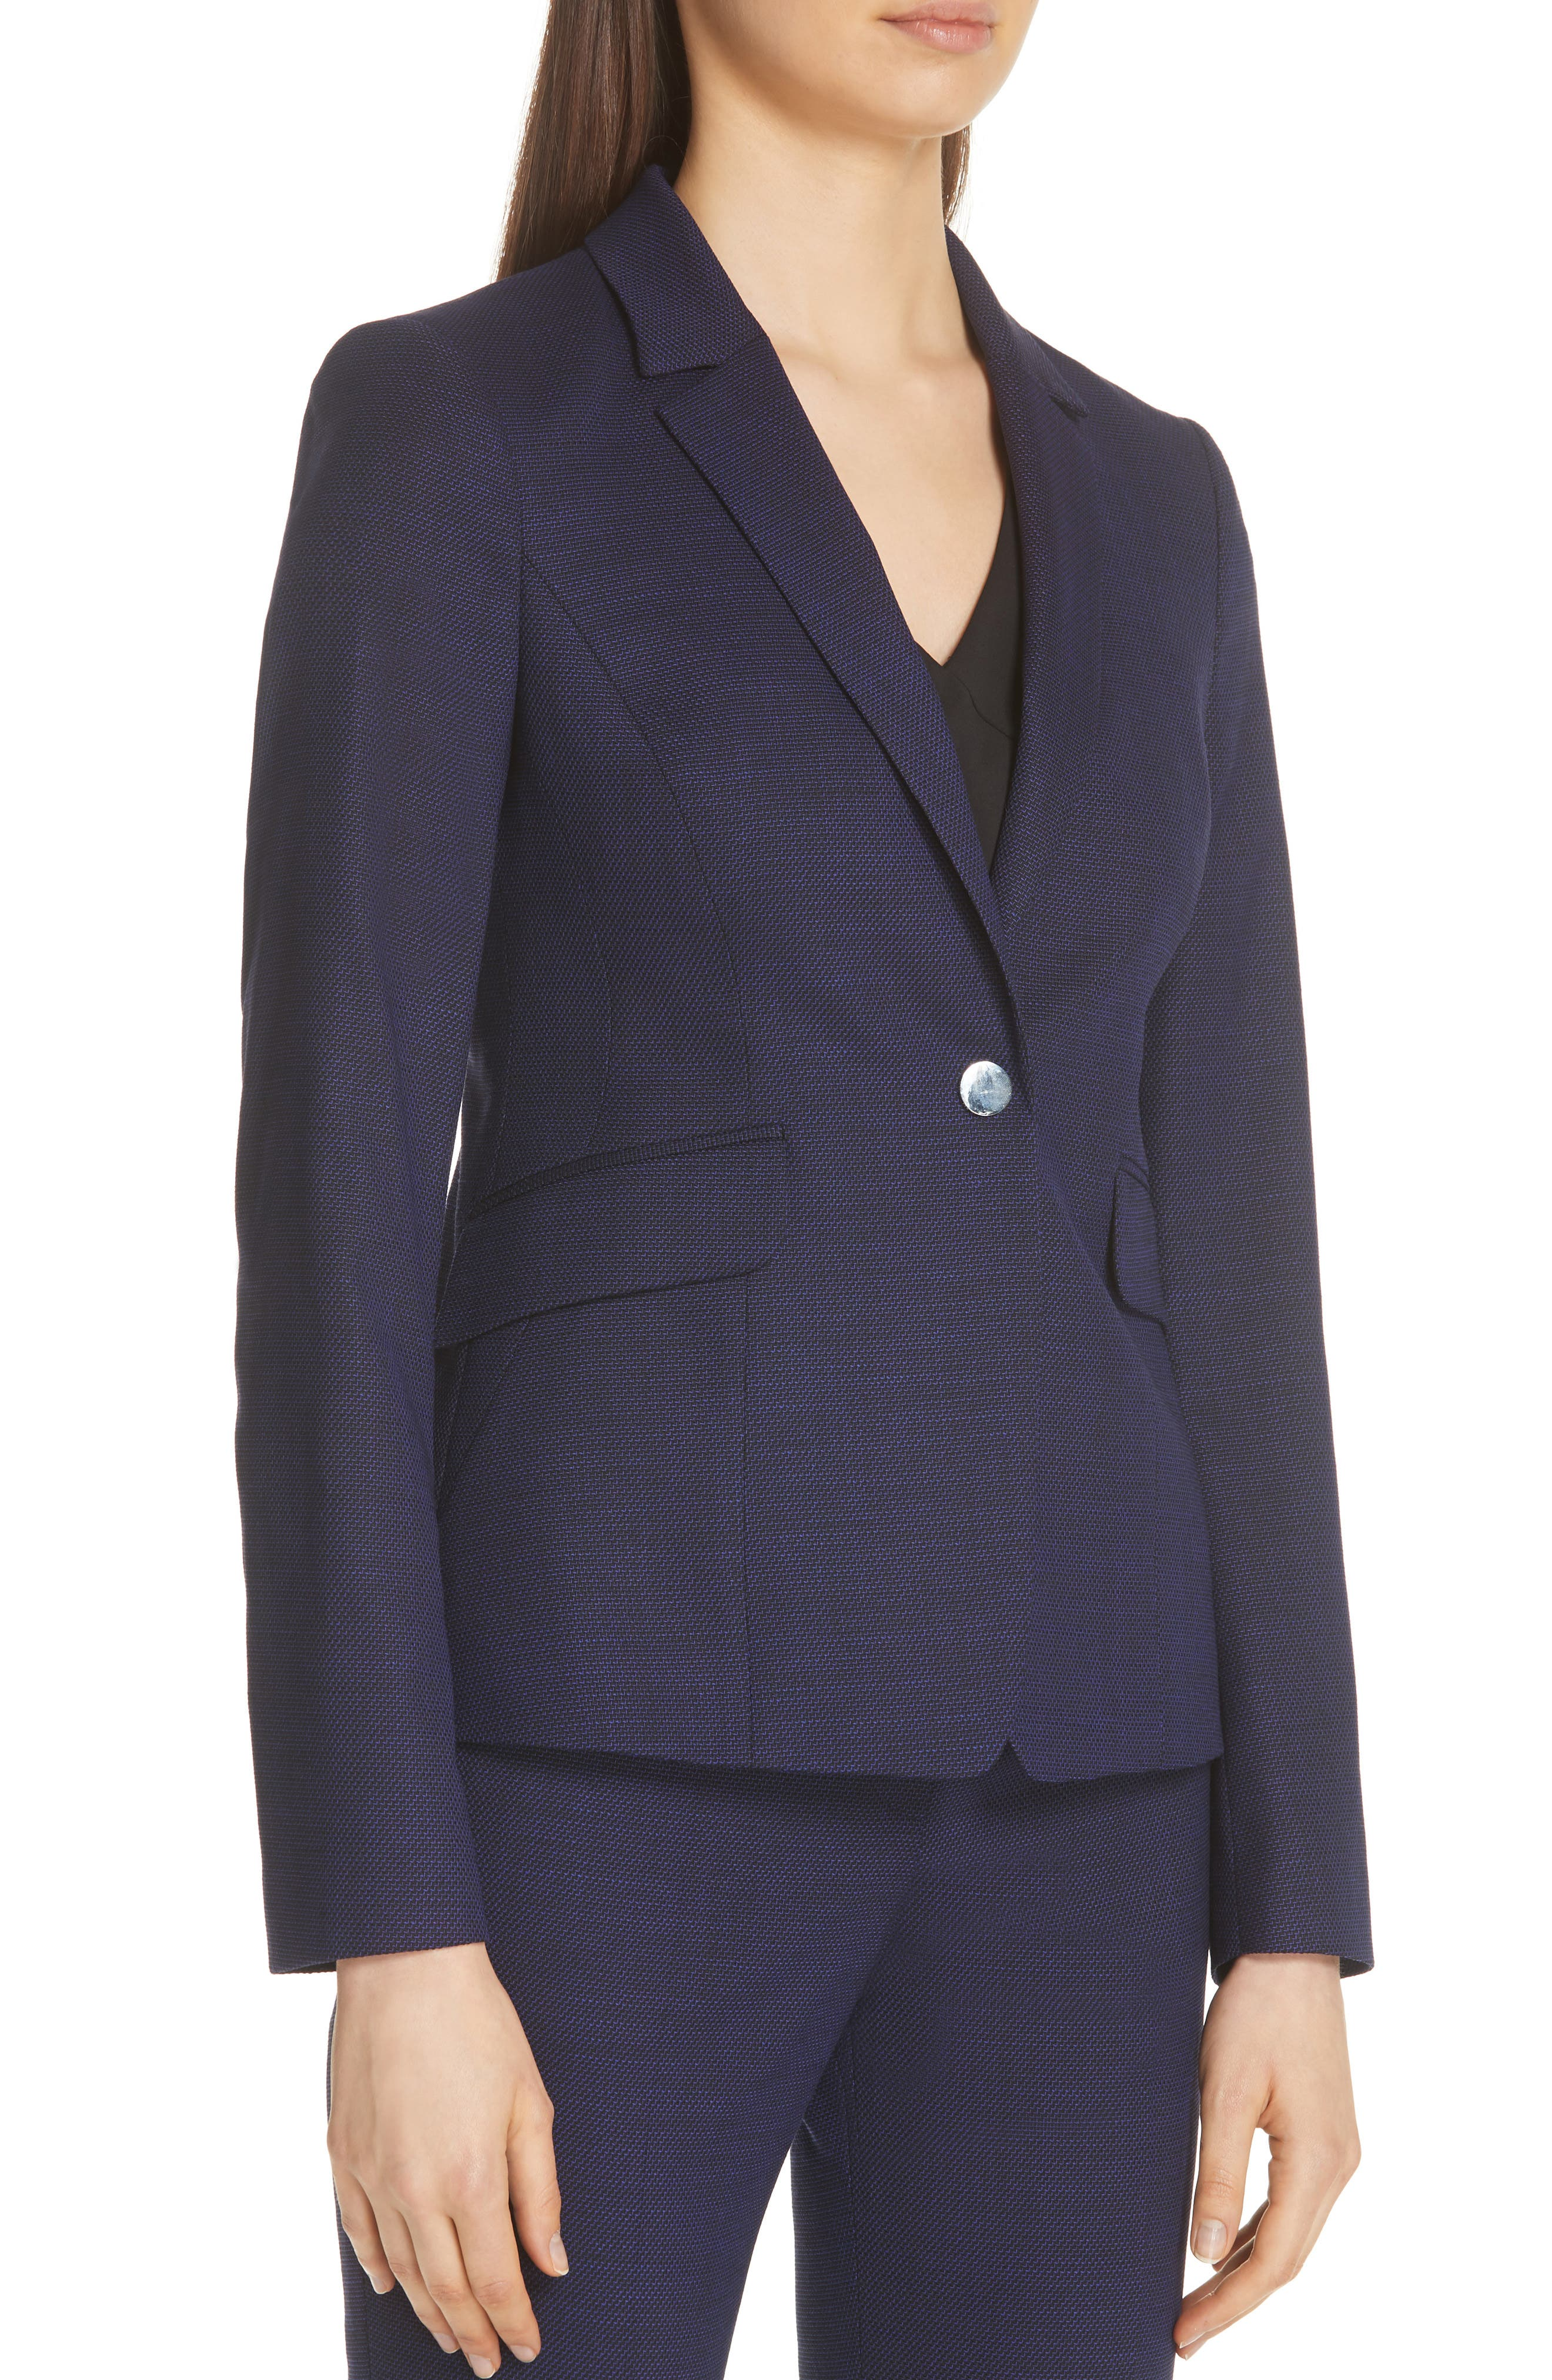 Jibalena Mini Glencheck Suit Jacket,                             Alternate thumbnail 4, color,                             Deep Lilac Fantasy